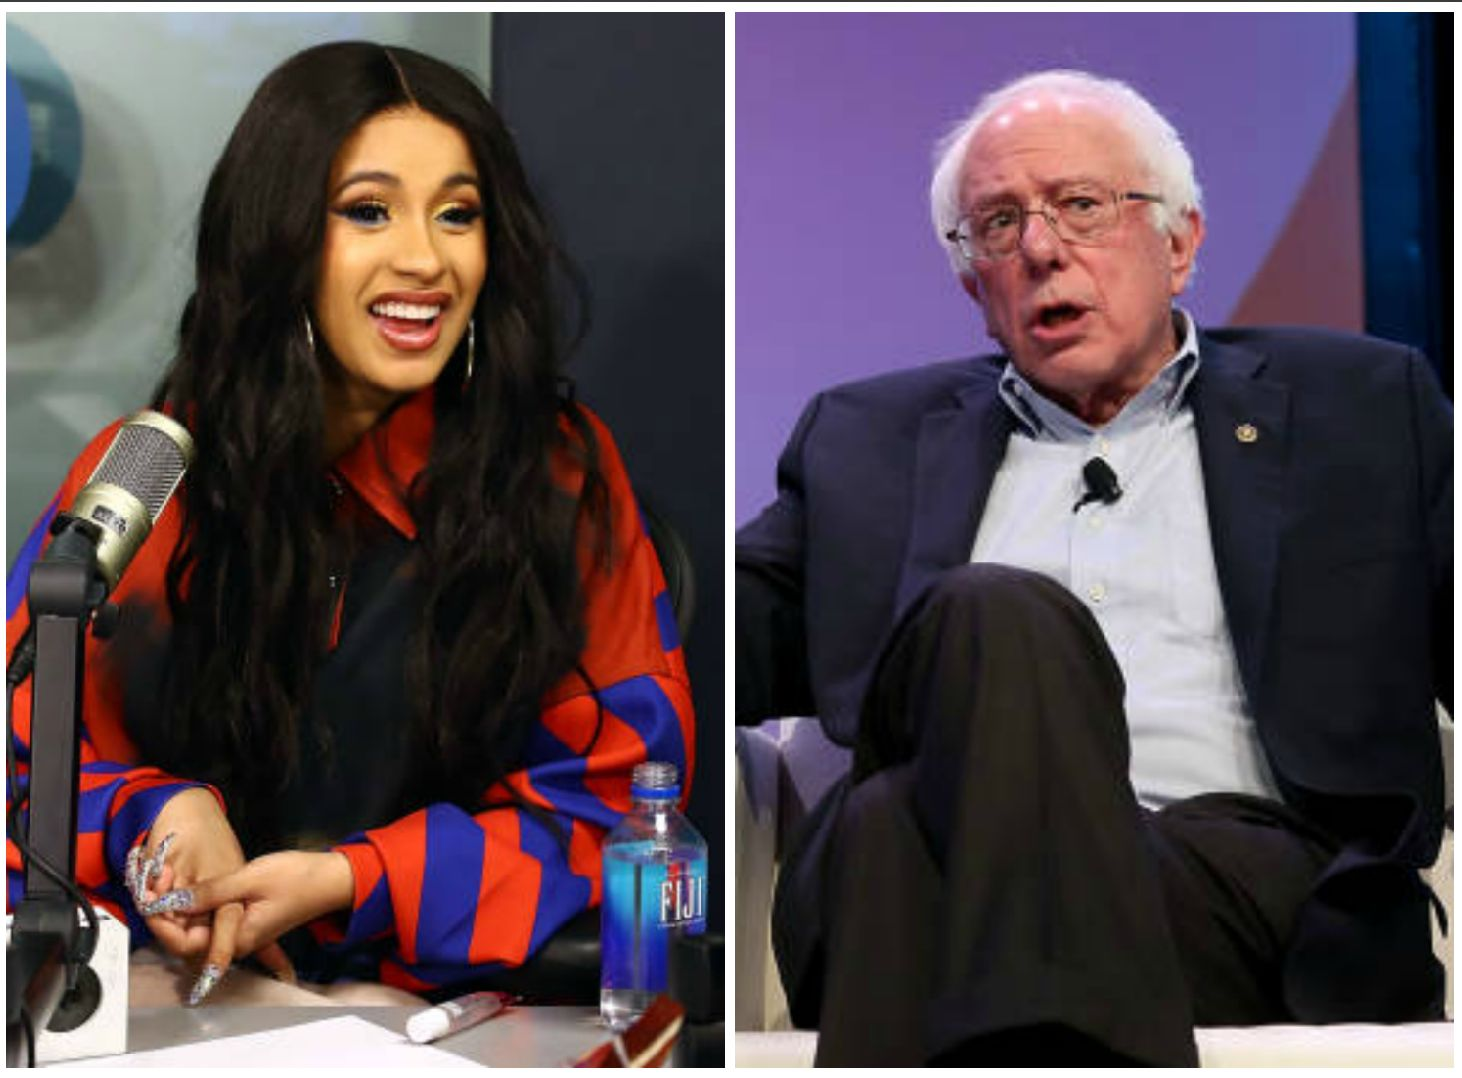 Did Bernie Sanders Just Give Props to Cardi B?